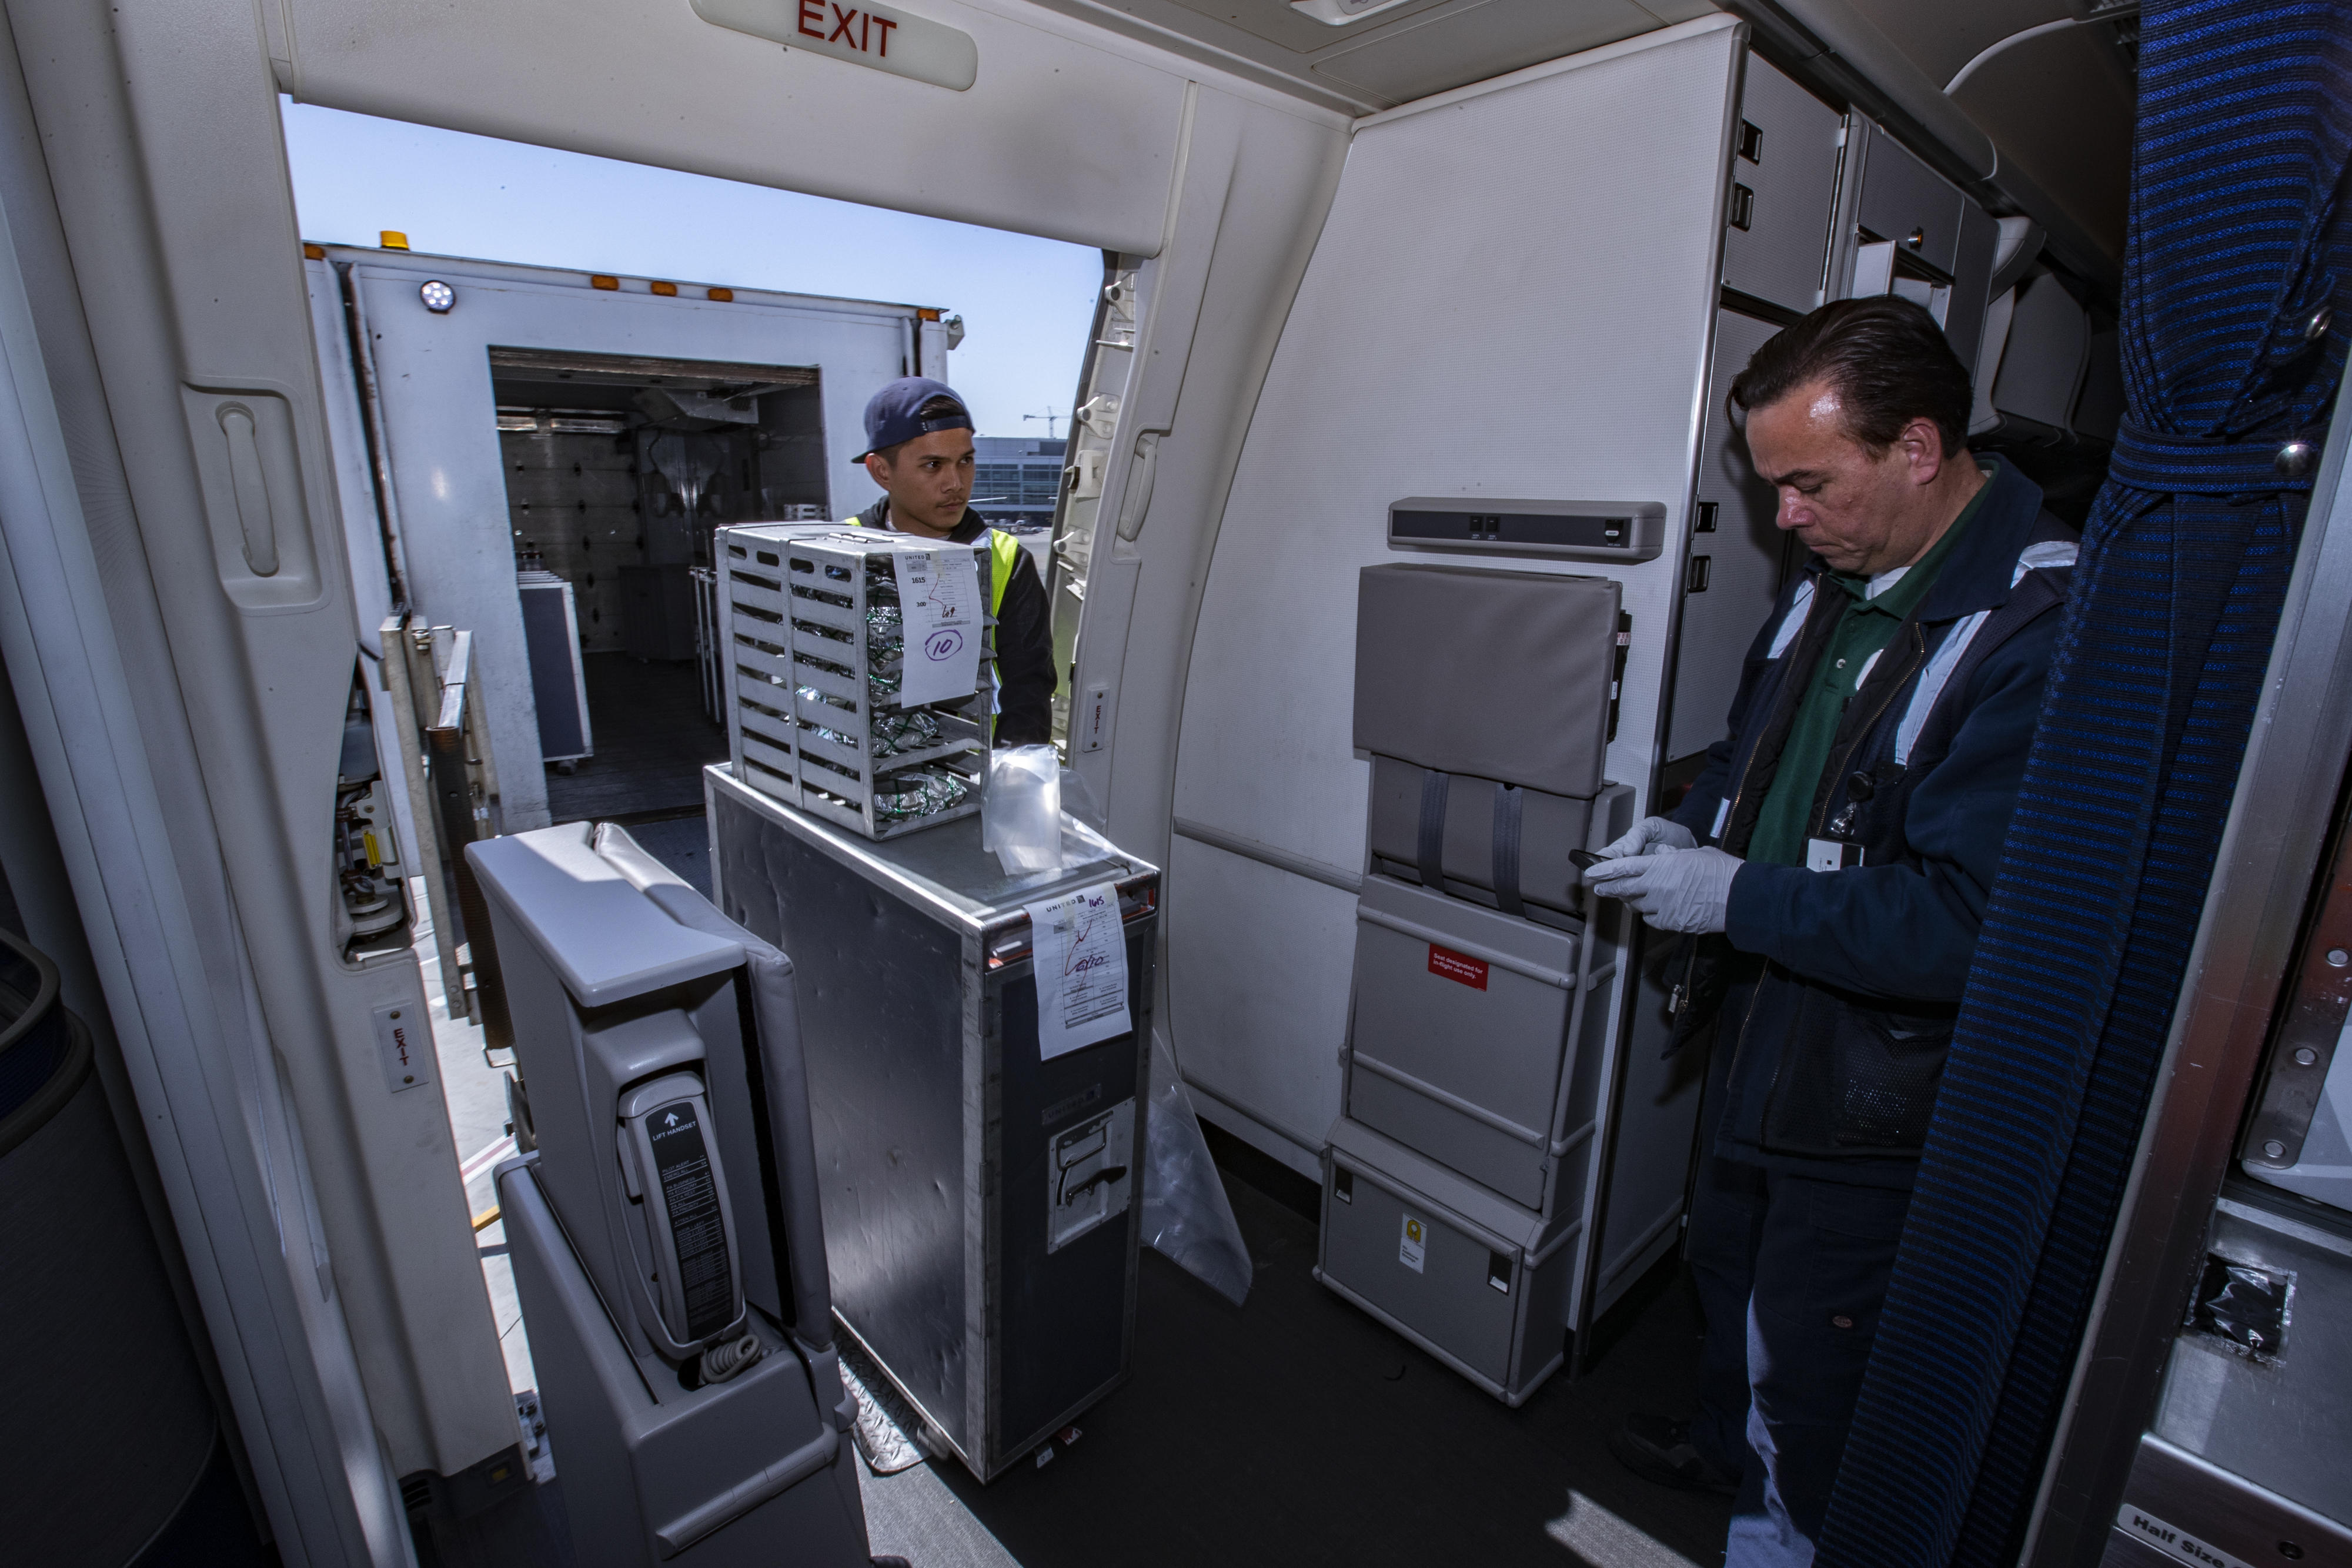 Before the new passengers board, catering crews load food onboard and remove used carts and rubbish from the previous flight.